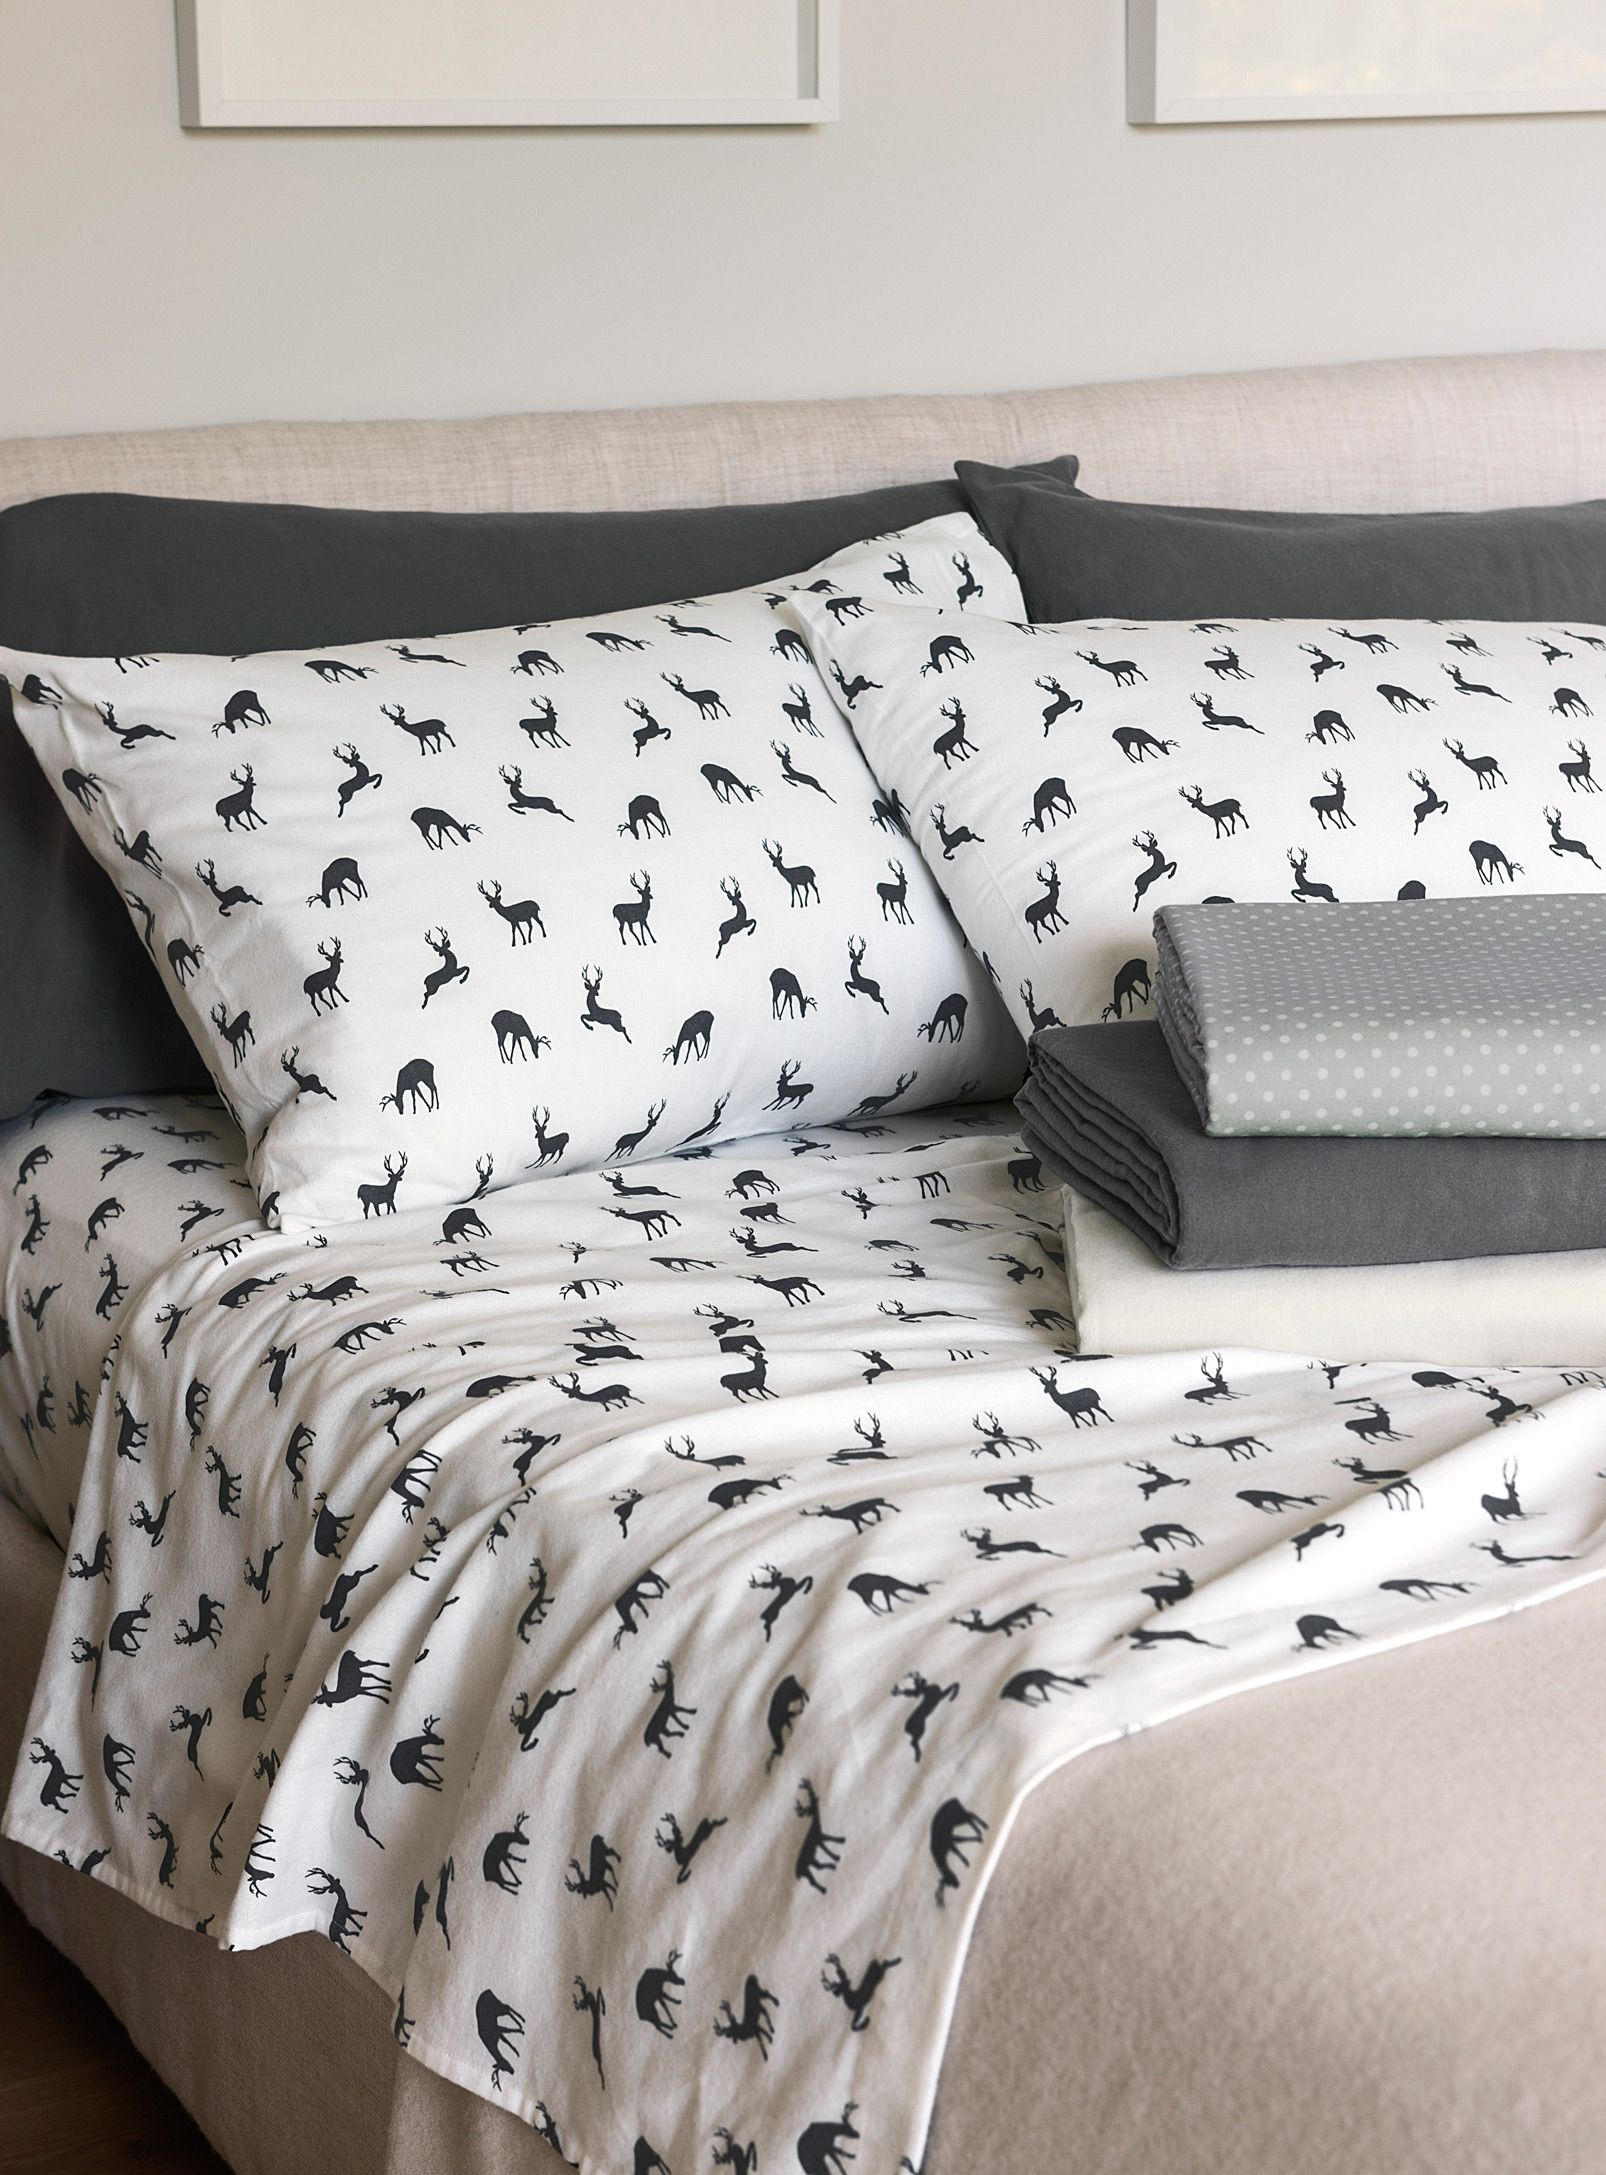 Shop Flannel Bed Sheets Online In Canada | Simons